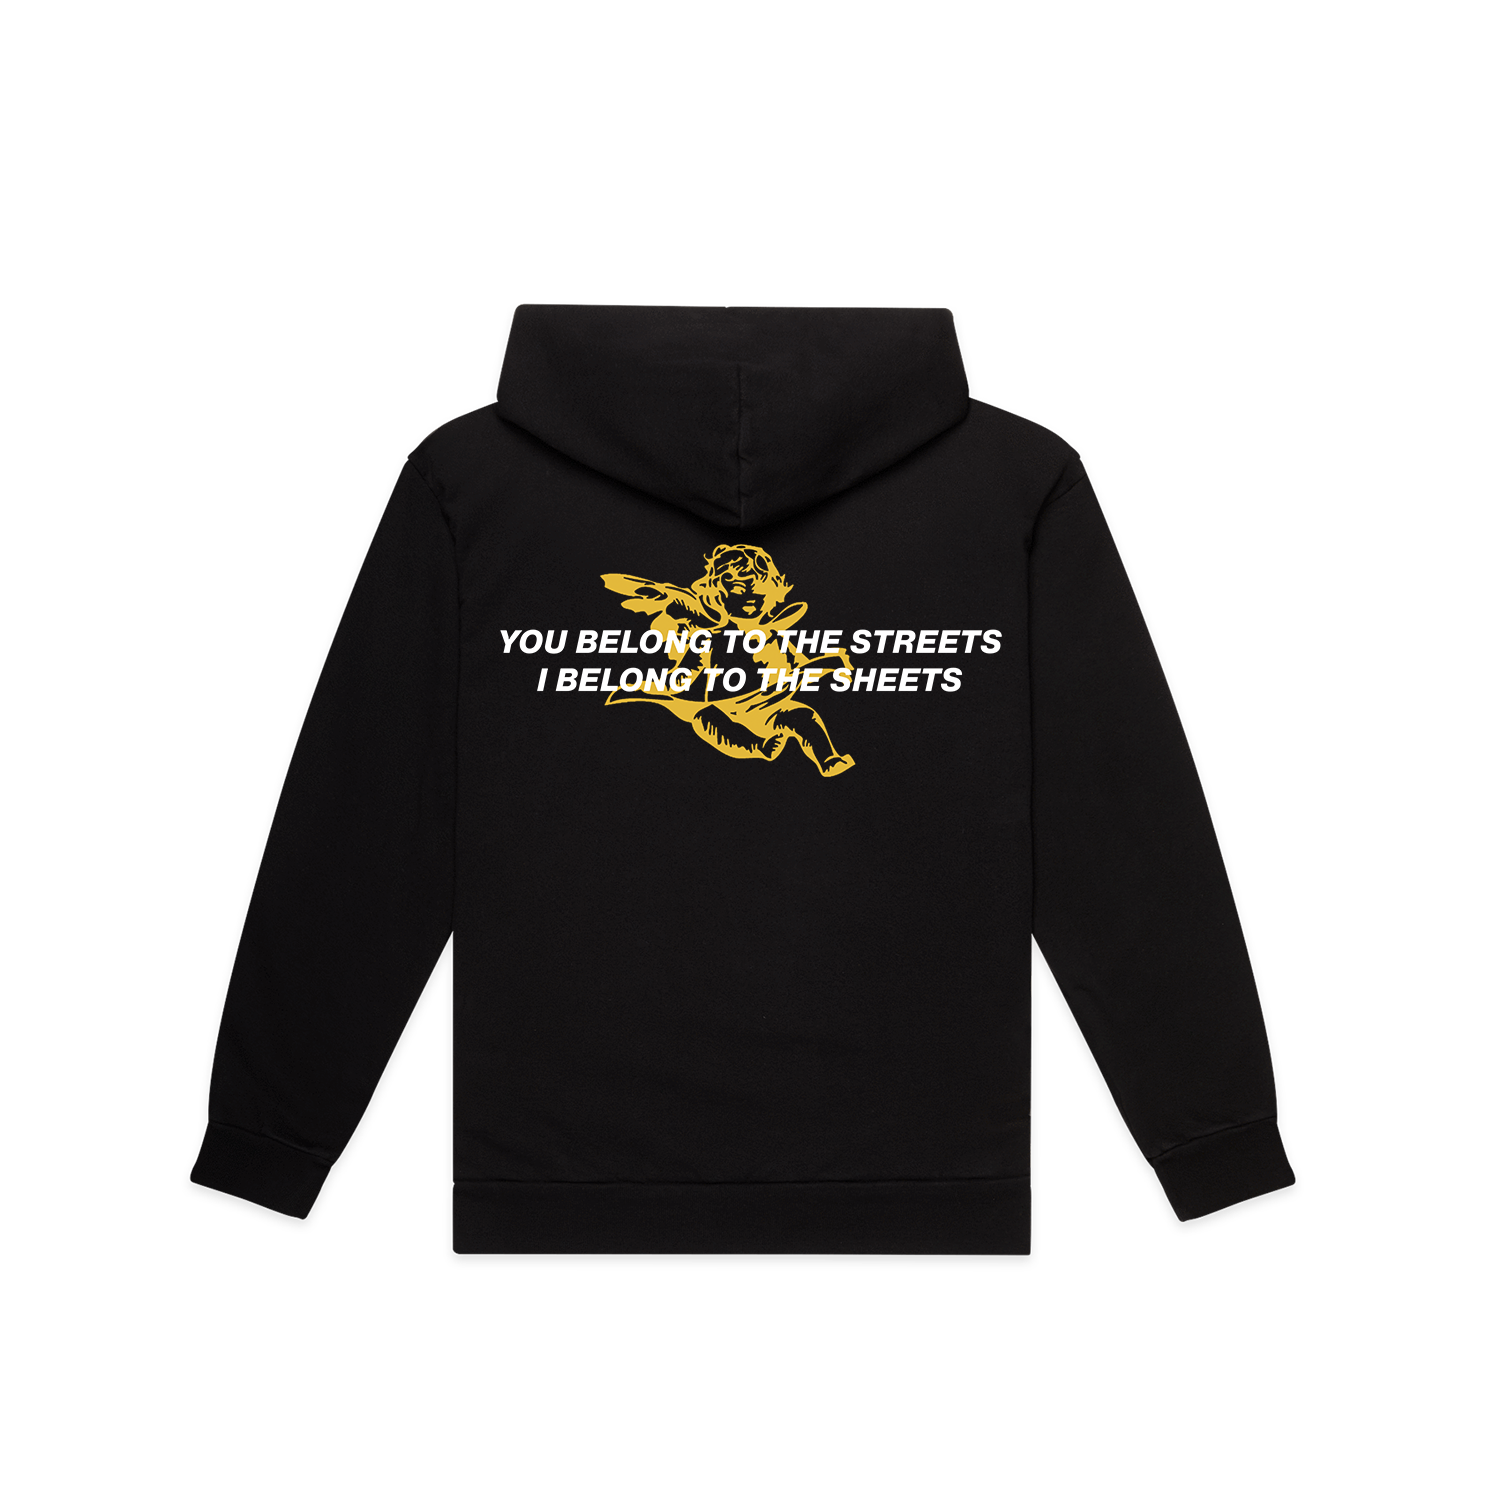 """THIRSTY THURSDAY"" HOODIE"